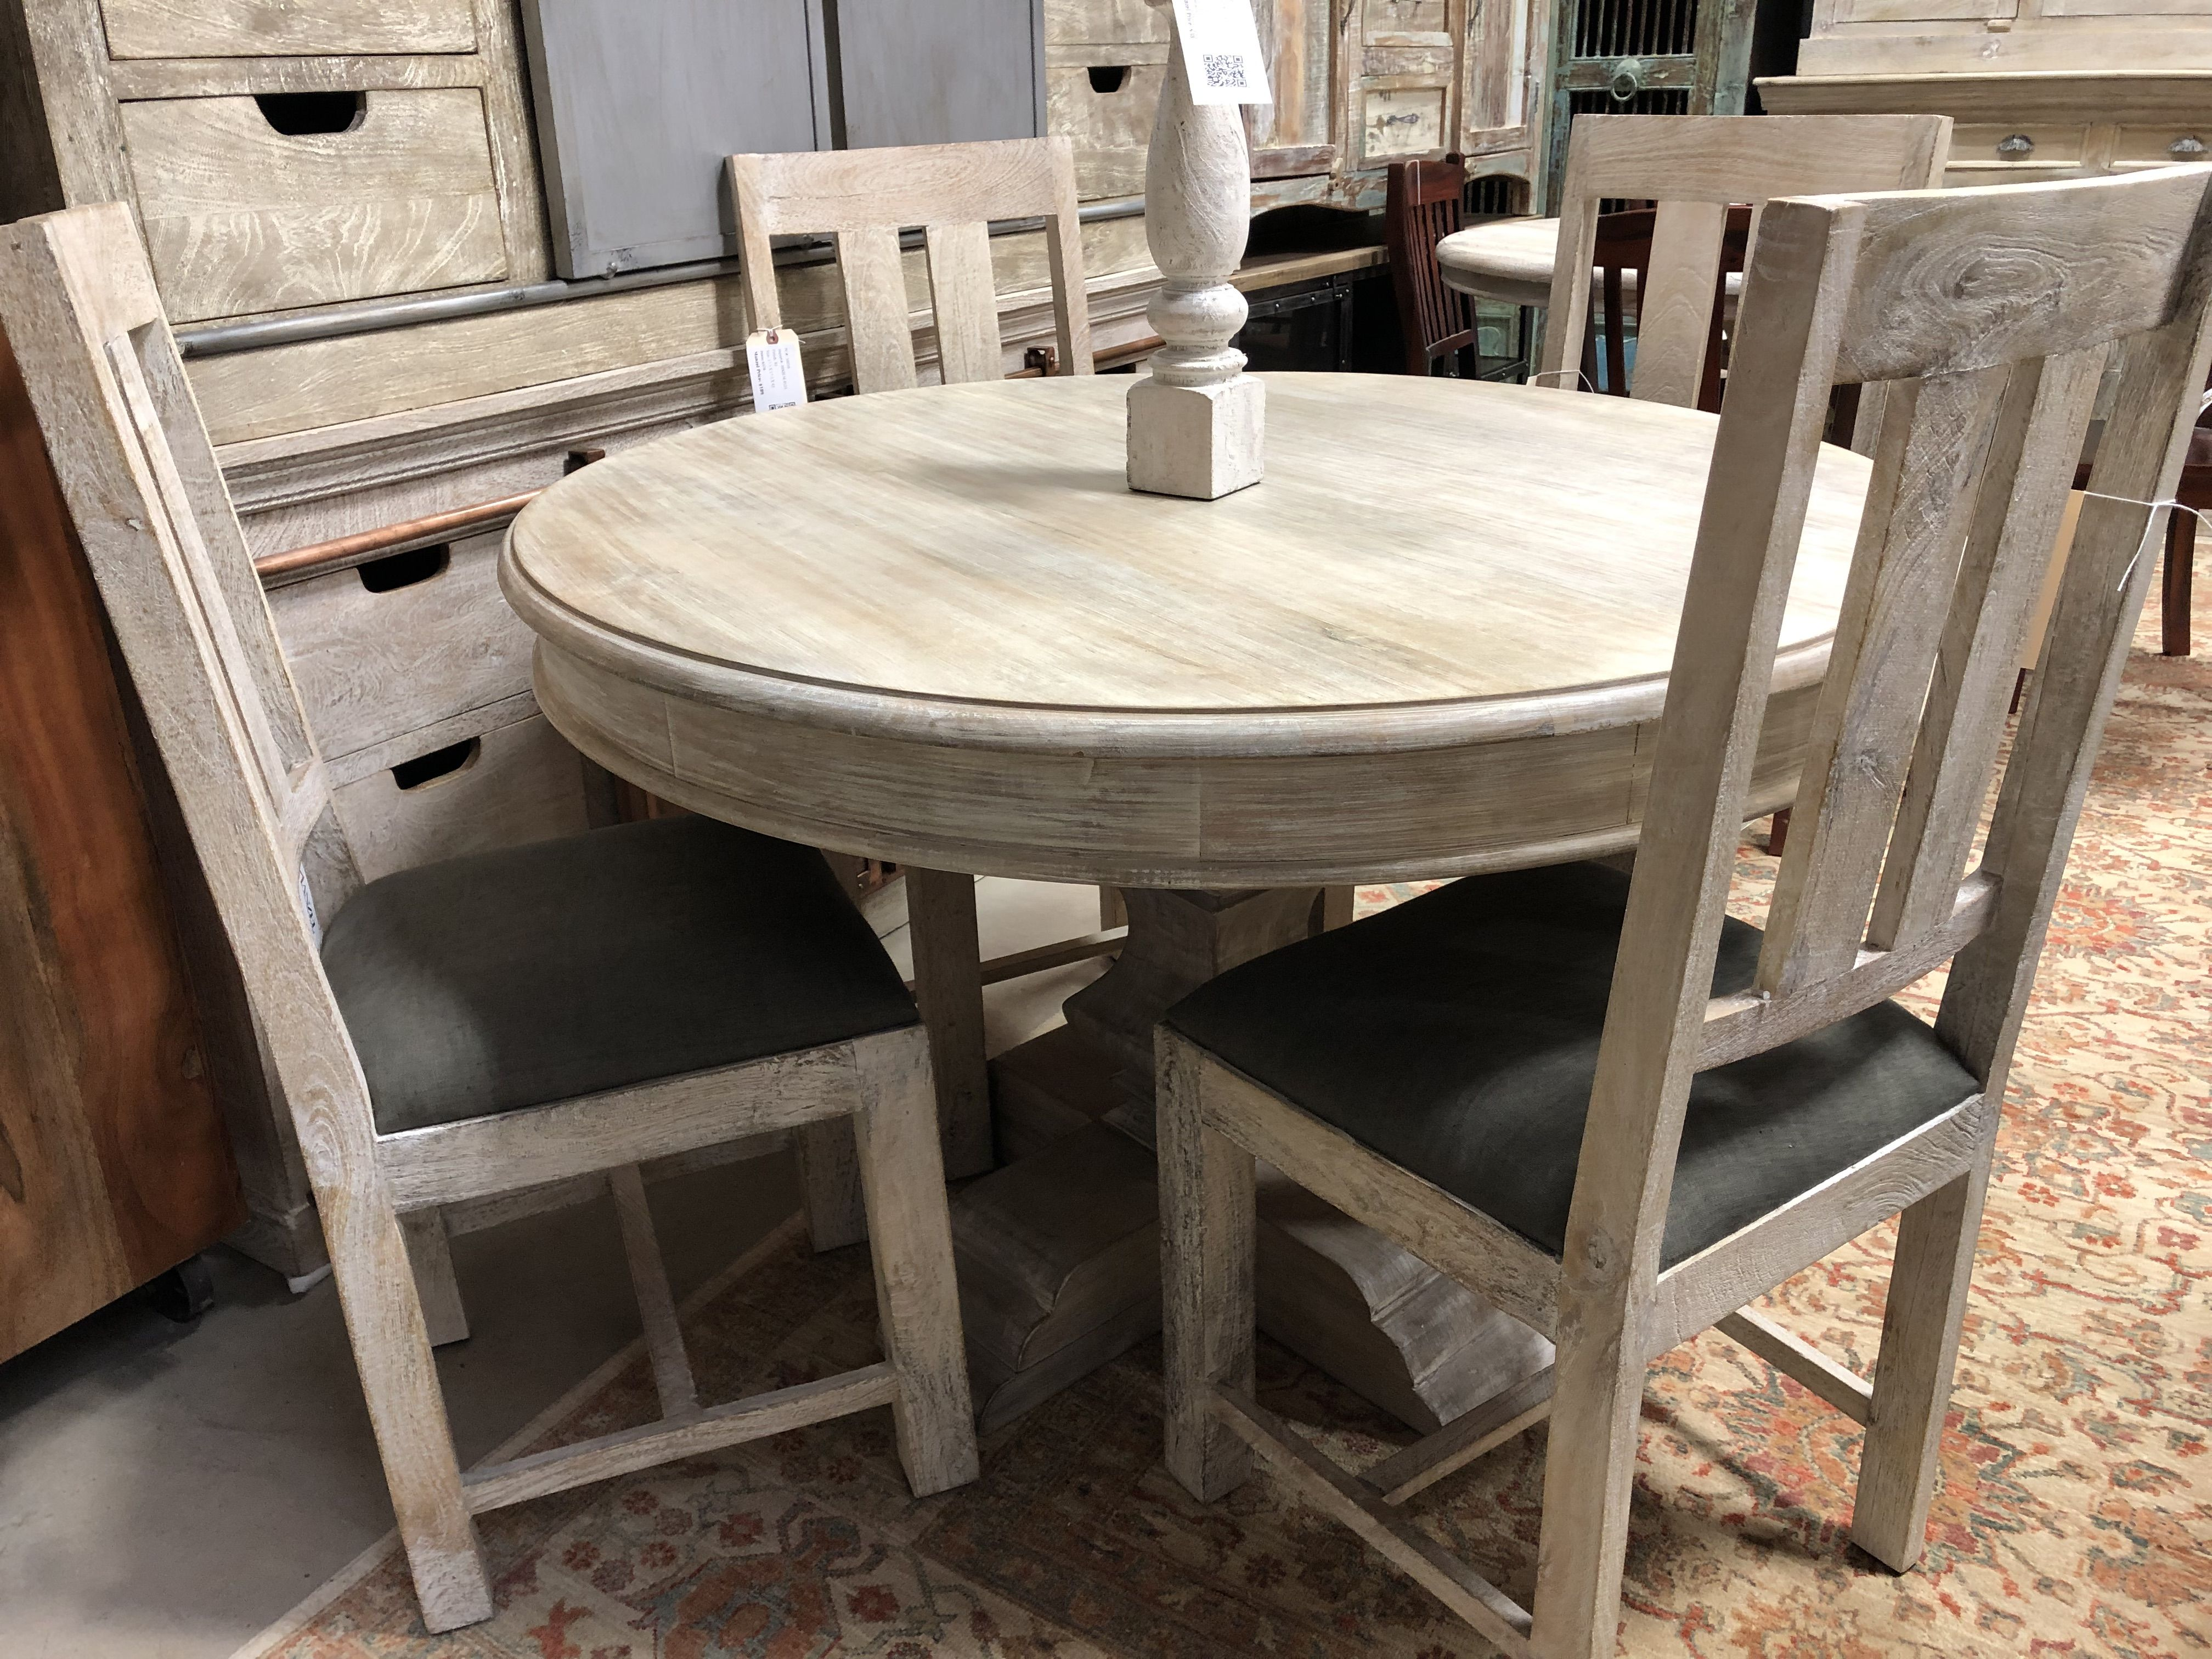 Solid Wood Round Dining Kitchen Table Dining Table In Kitchen Rustic Wood Furniture Rustic Dining Table